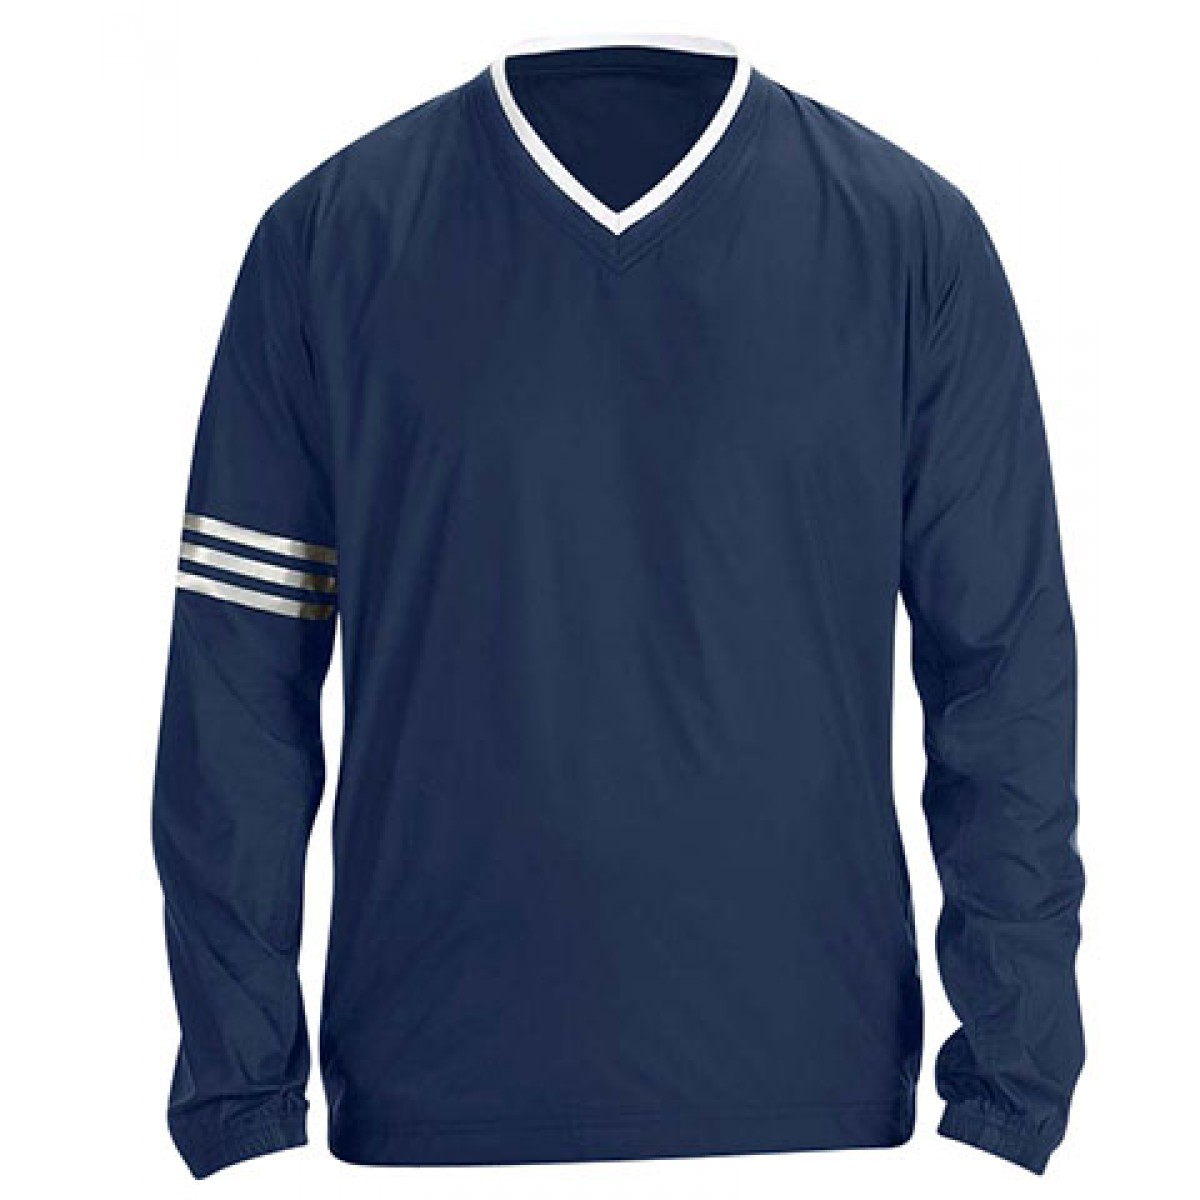 Adidas ClimaLite V-Neck Long Sleeve Wind Shirt-Navy-S